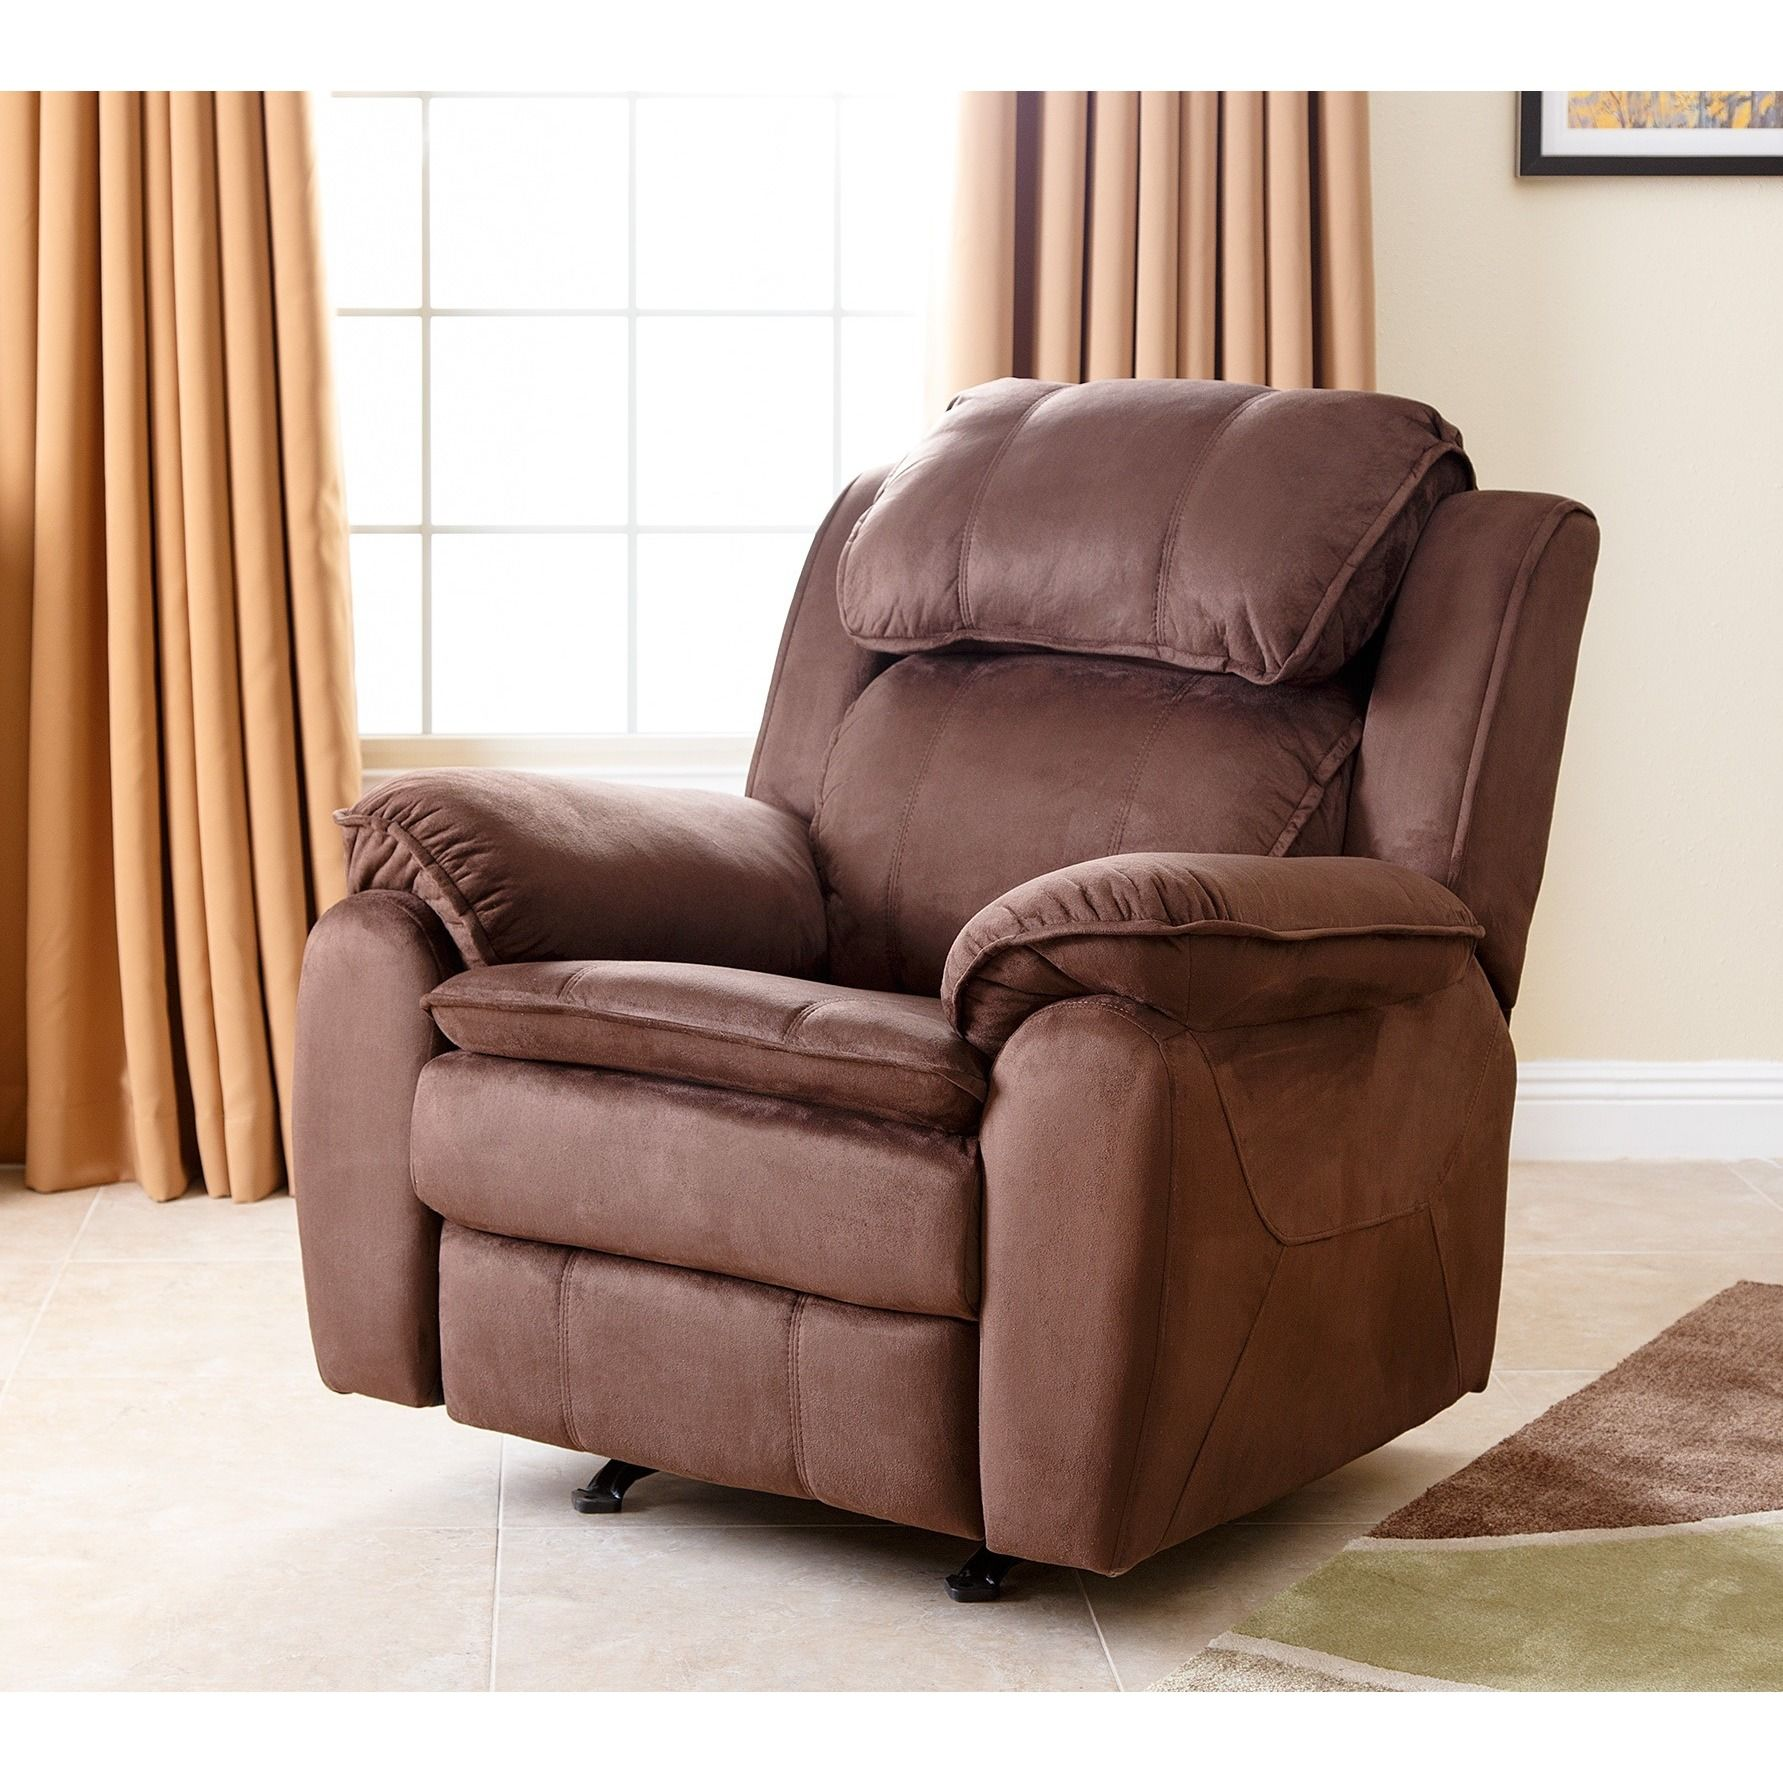 Awesome Allow Yourself To Sink Into This Plush Rocker Recliner For A Inzonedesignstudio Interior Chair Design Inzonedesignstudiocom